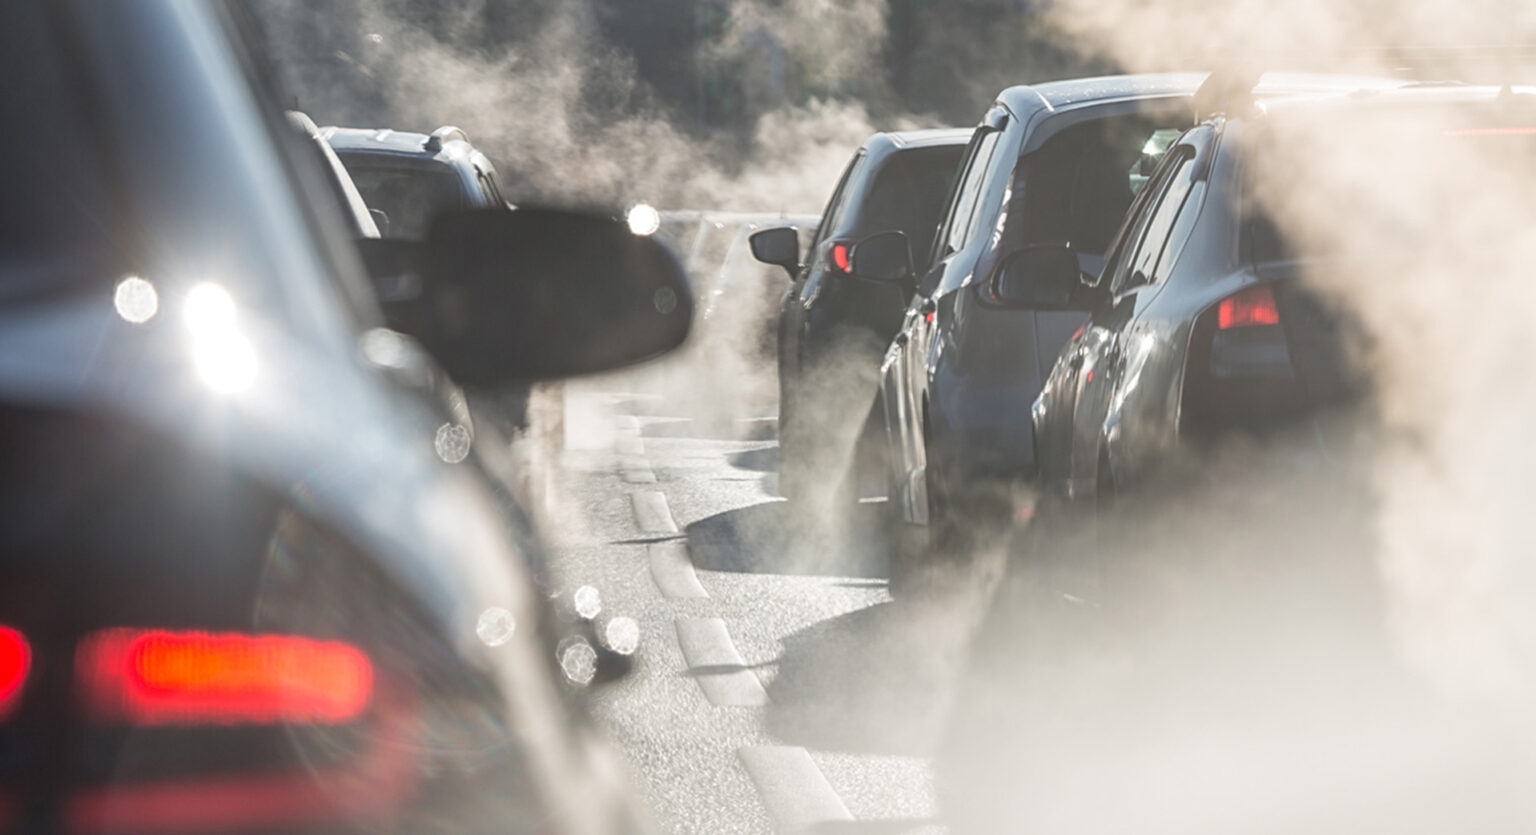 Italy is one of the European countries with the highest pollution levels